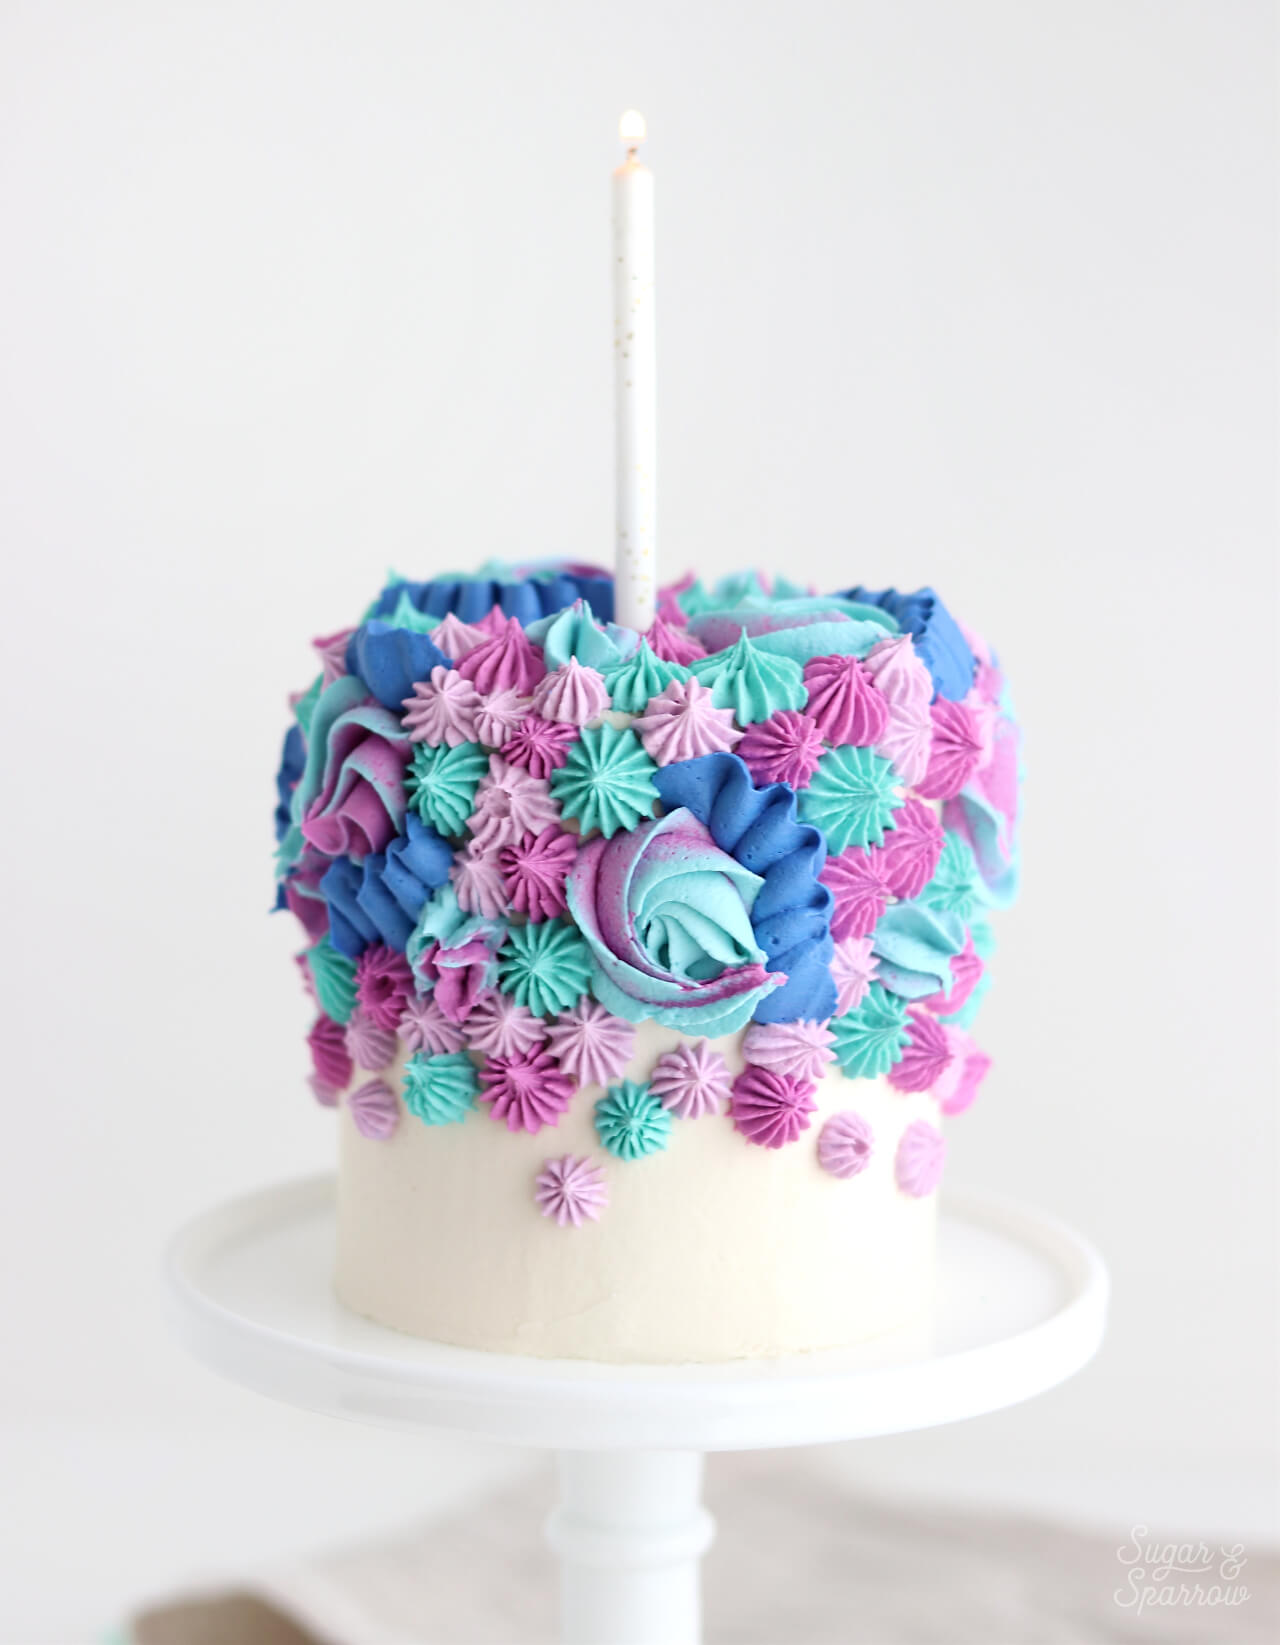 1st Birthday Smash Cake Recipe + Decorating Ideas - Sugar & Sparrow